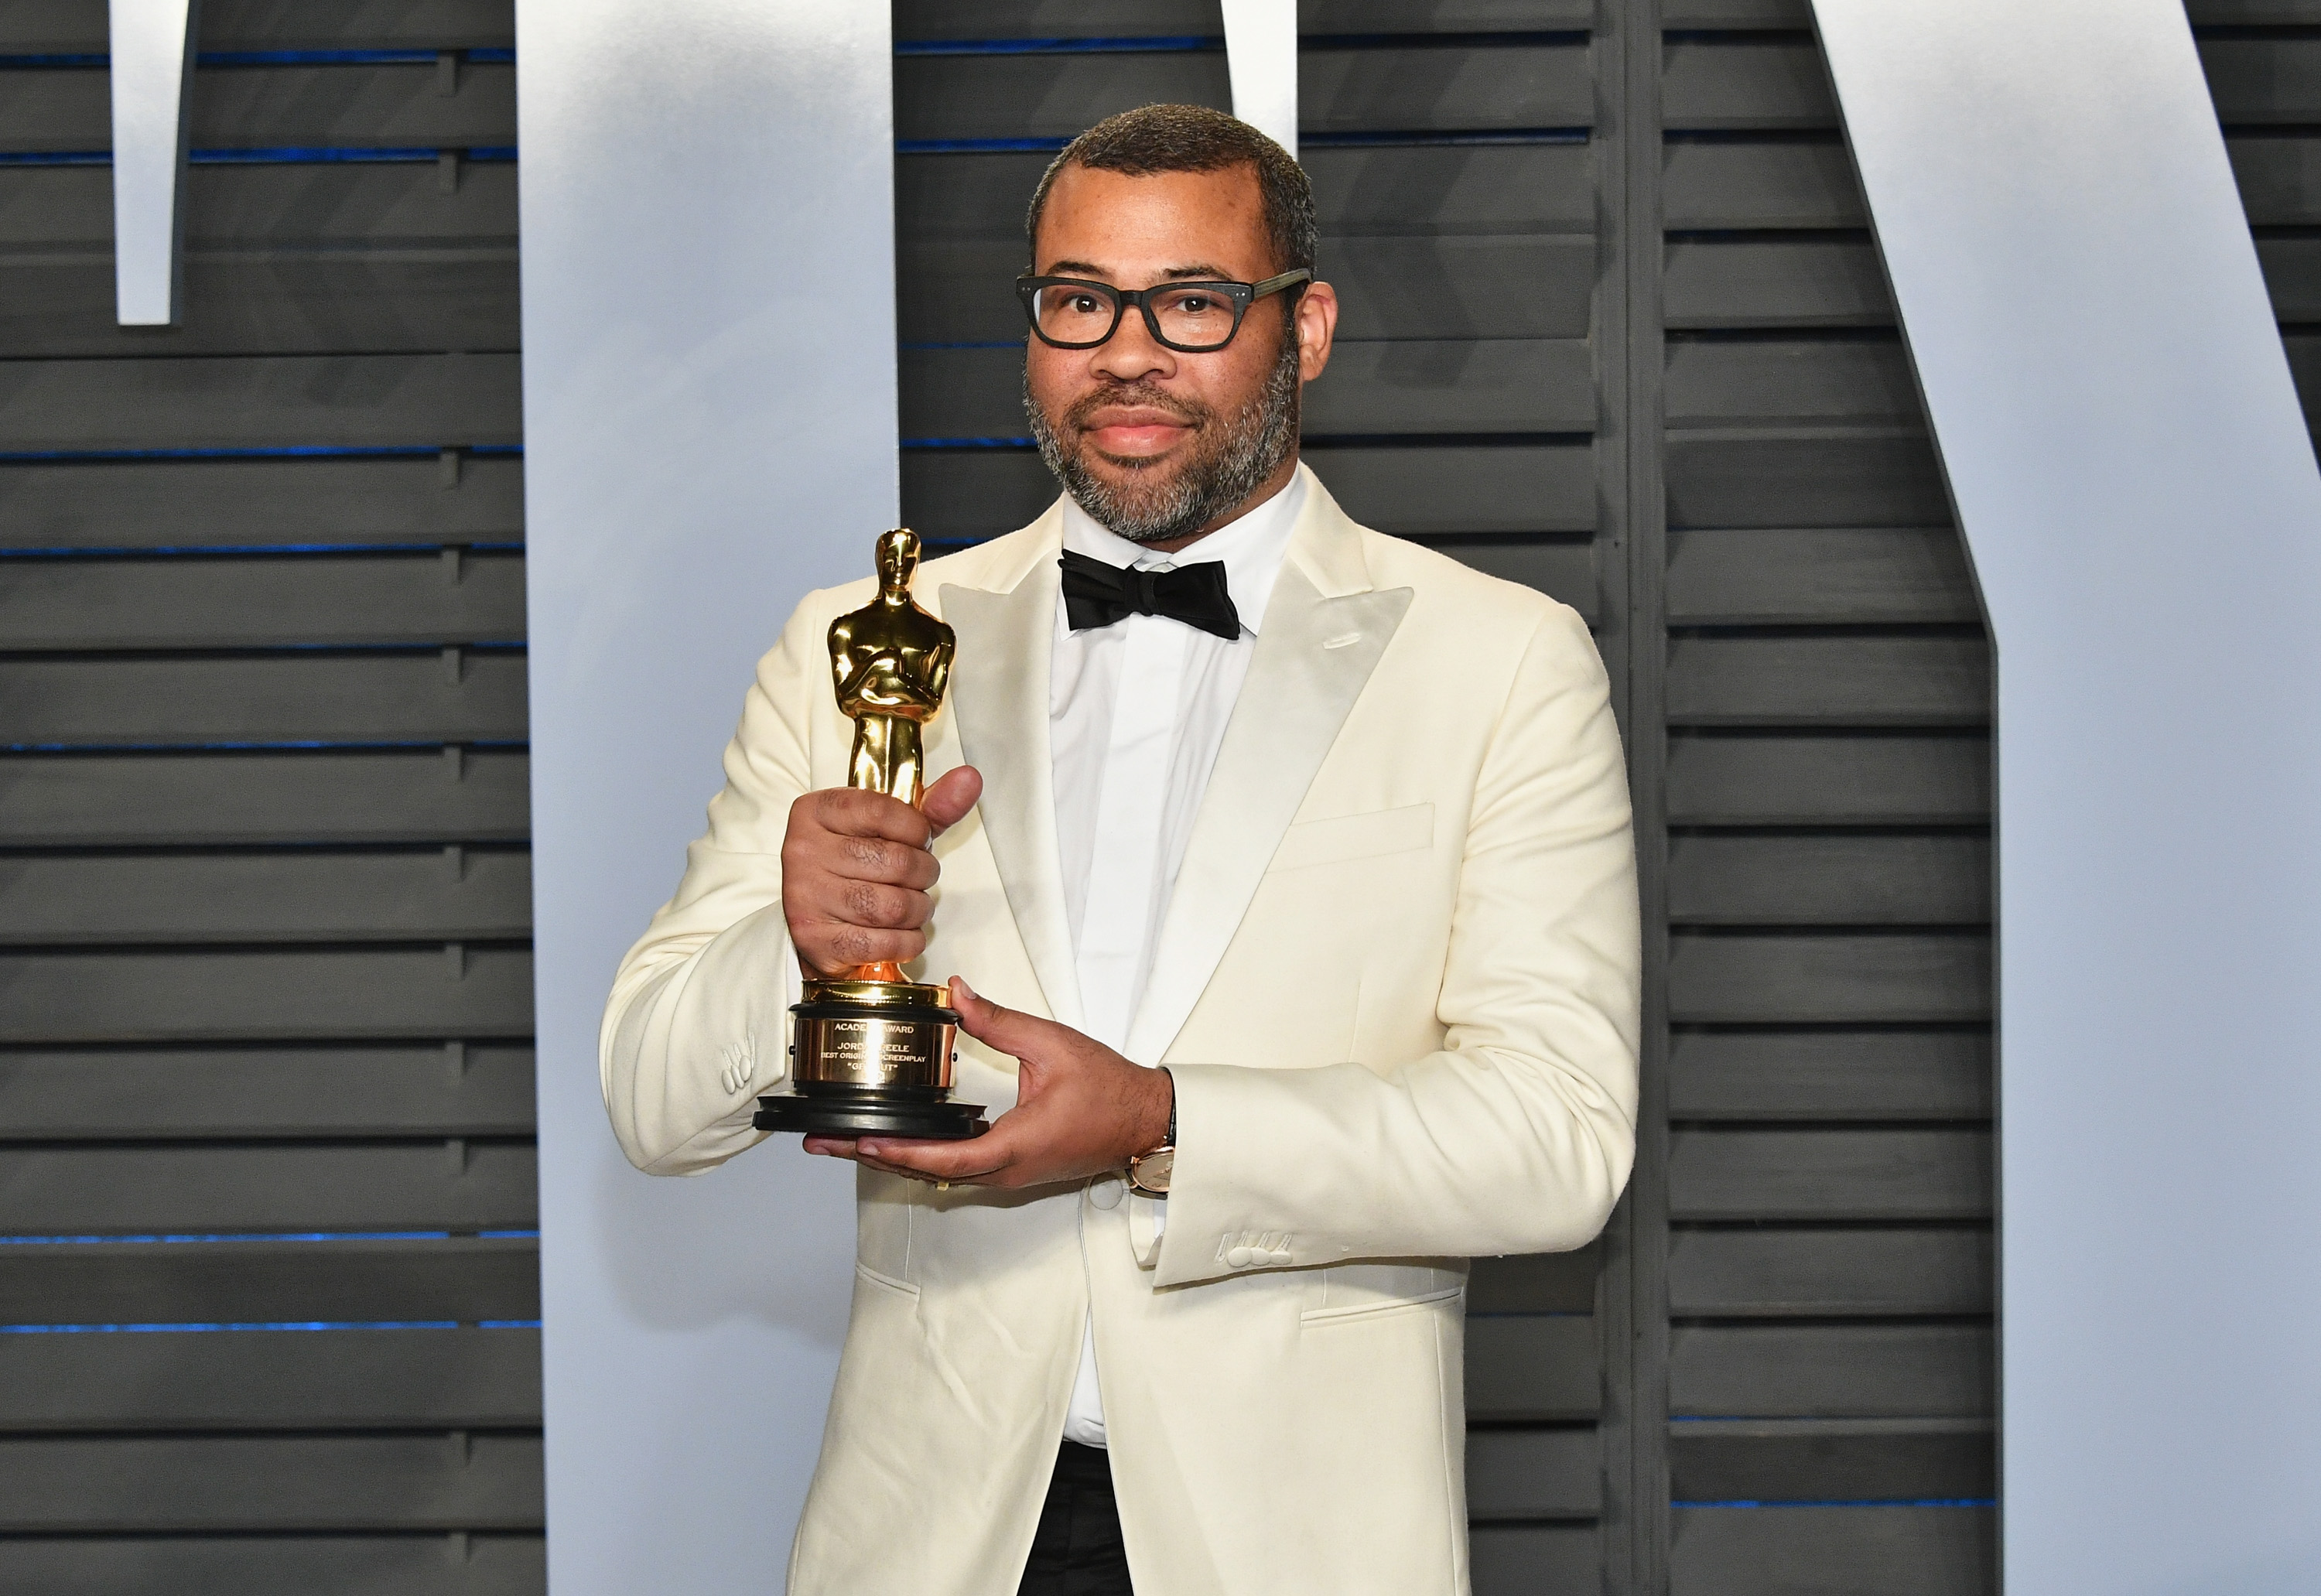 Jordan Peele won him first Academy Award for the first film he wrote and directed - 'Get Out.' One wonders if 'Us' will land him the second one. (Photo by Dia Dipasupil/Getty Images)